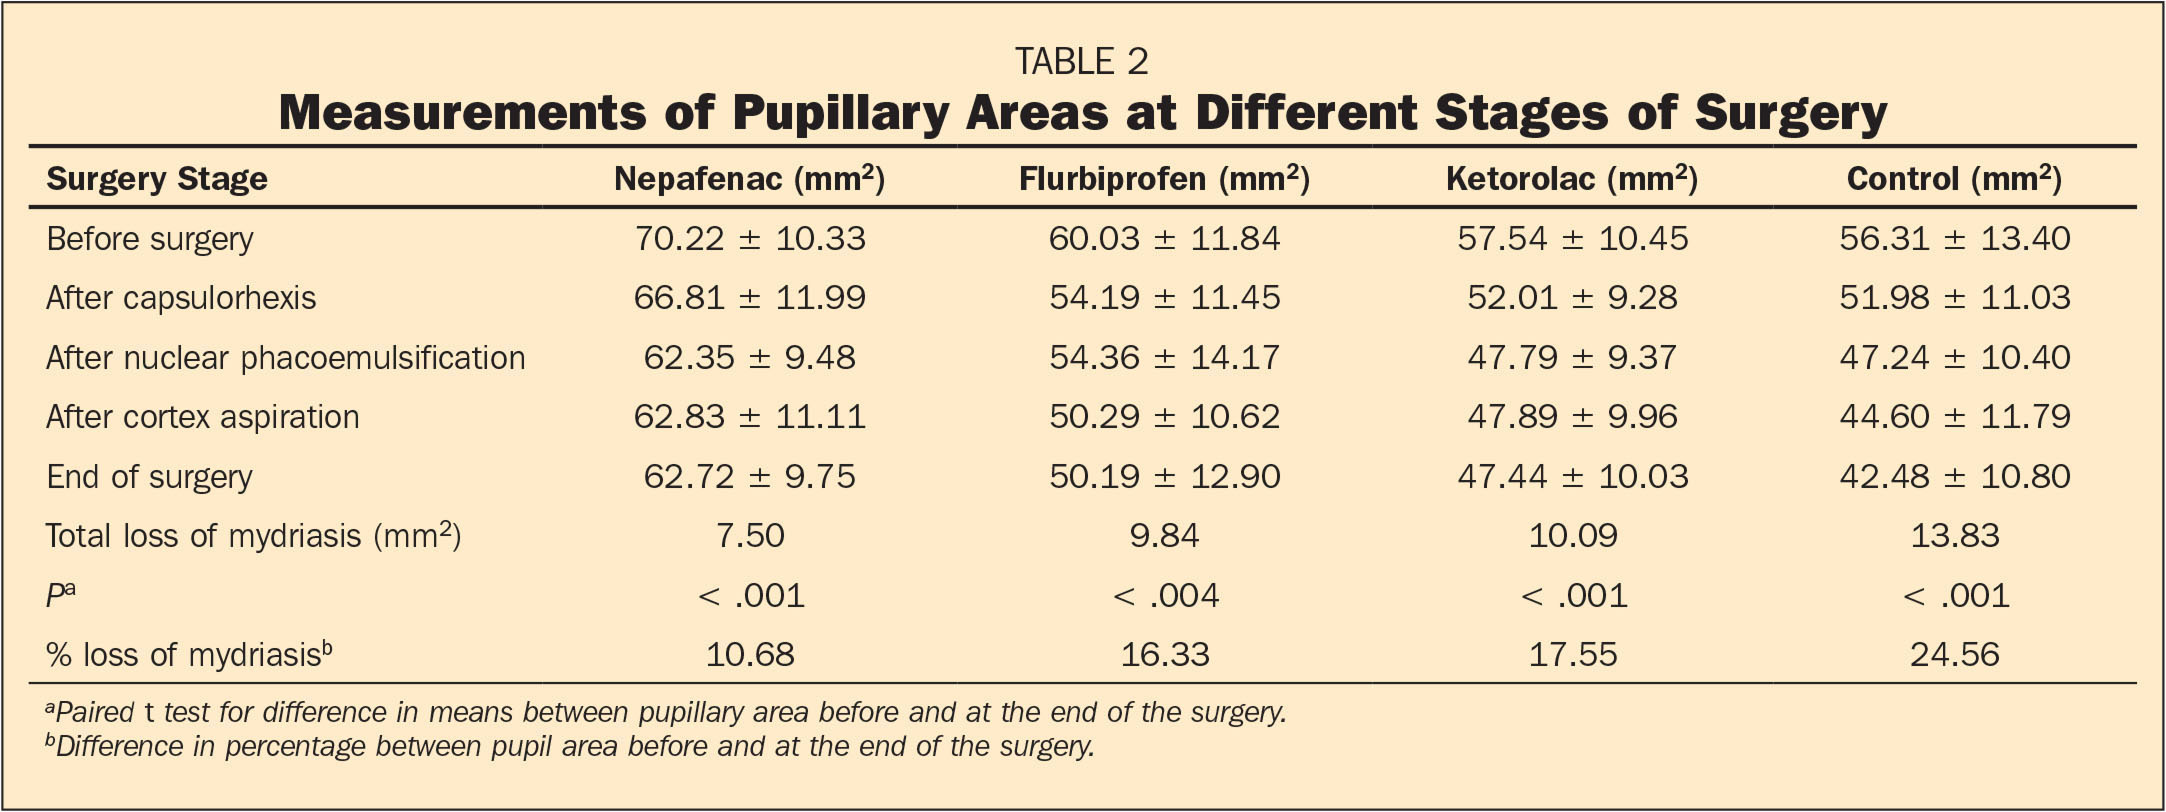 Effect Of Topical Nonsteroidal Anti Inflammatory Drugs On Pupillary Size During Uncomplicated